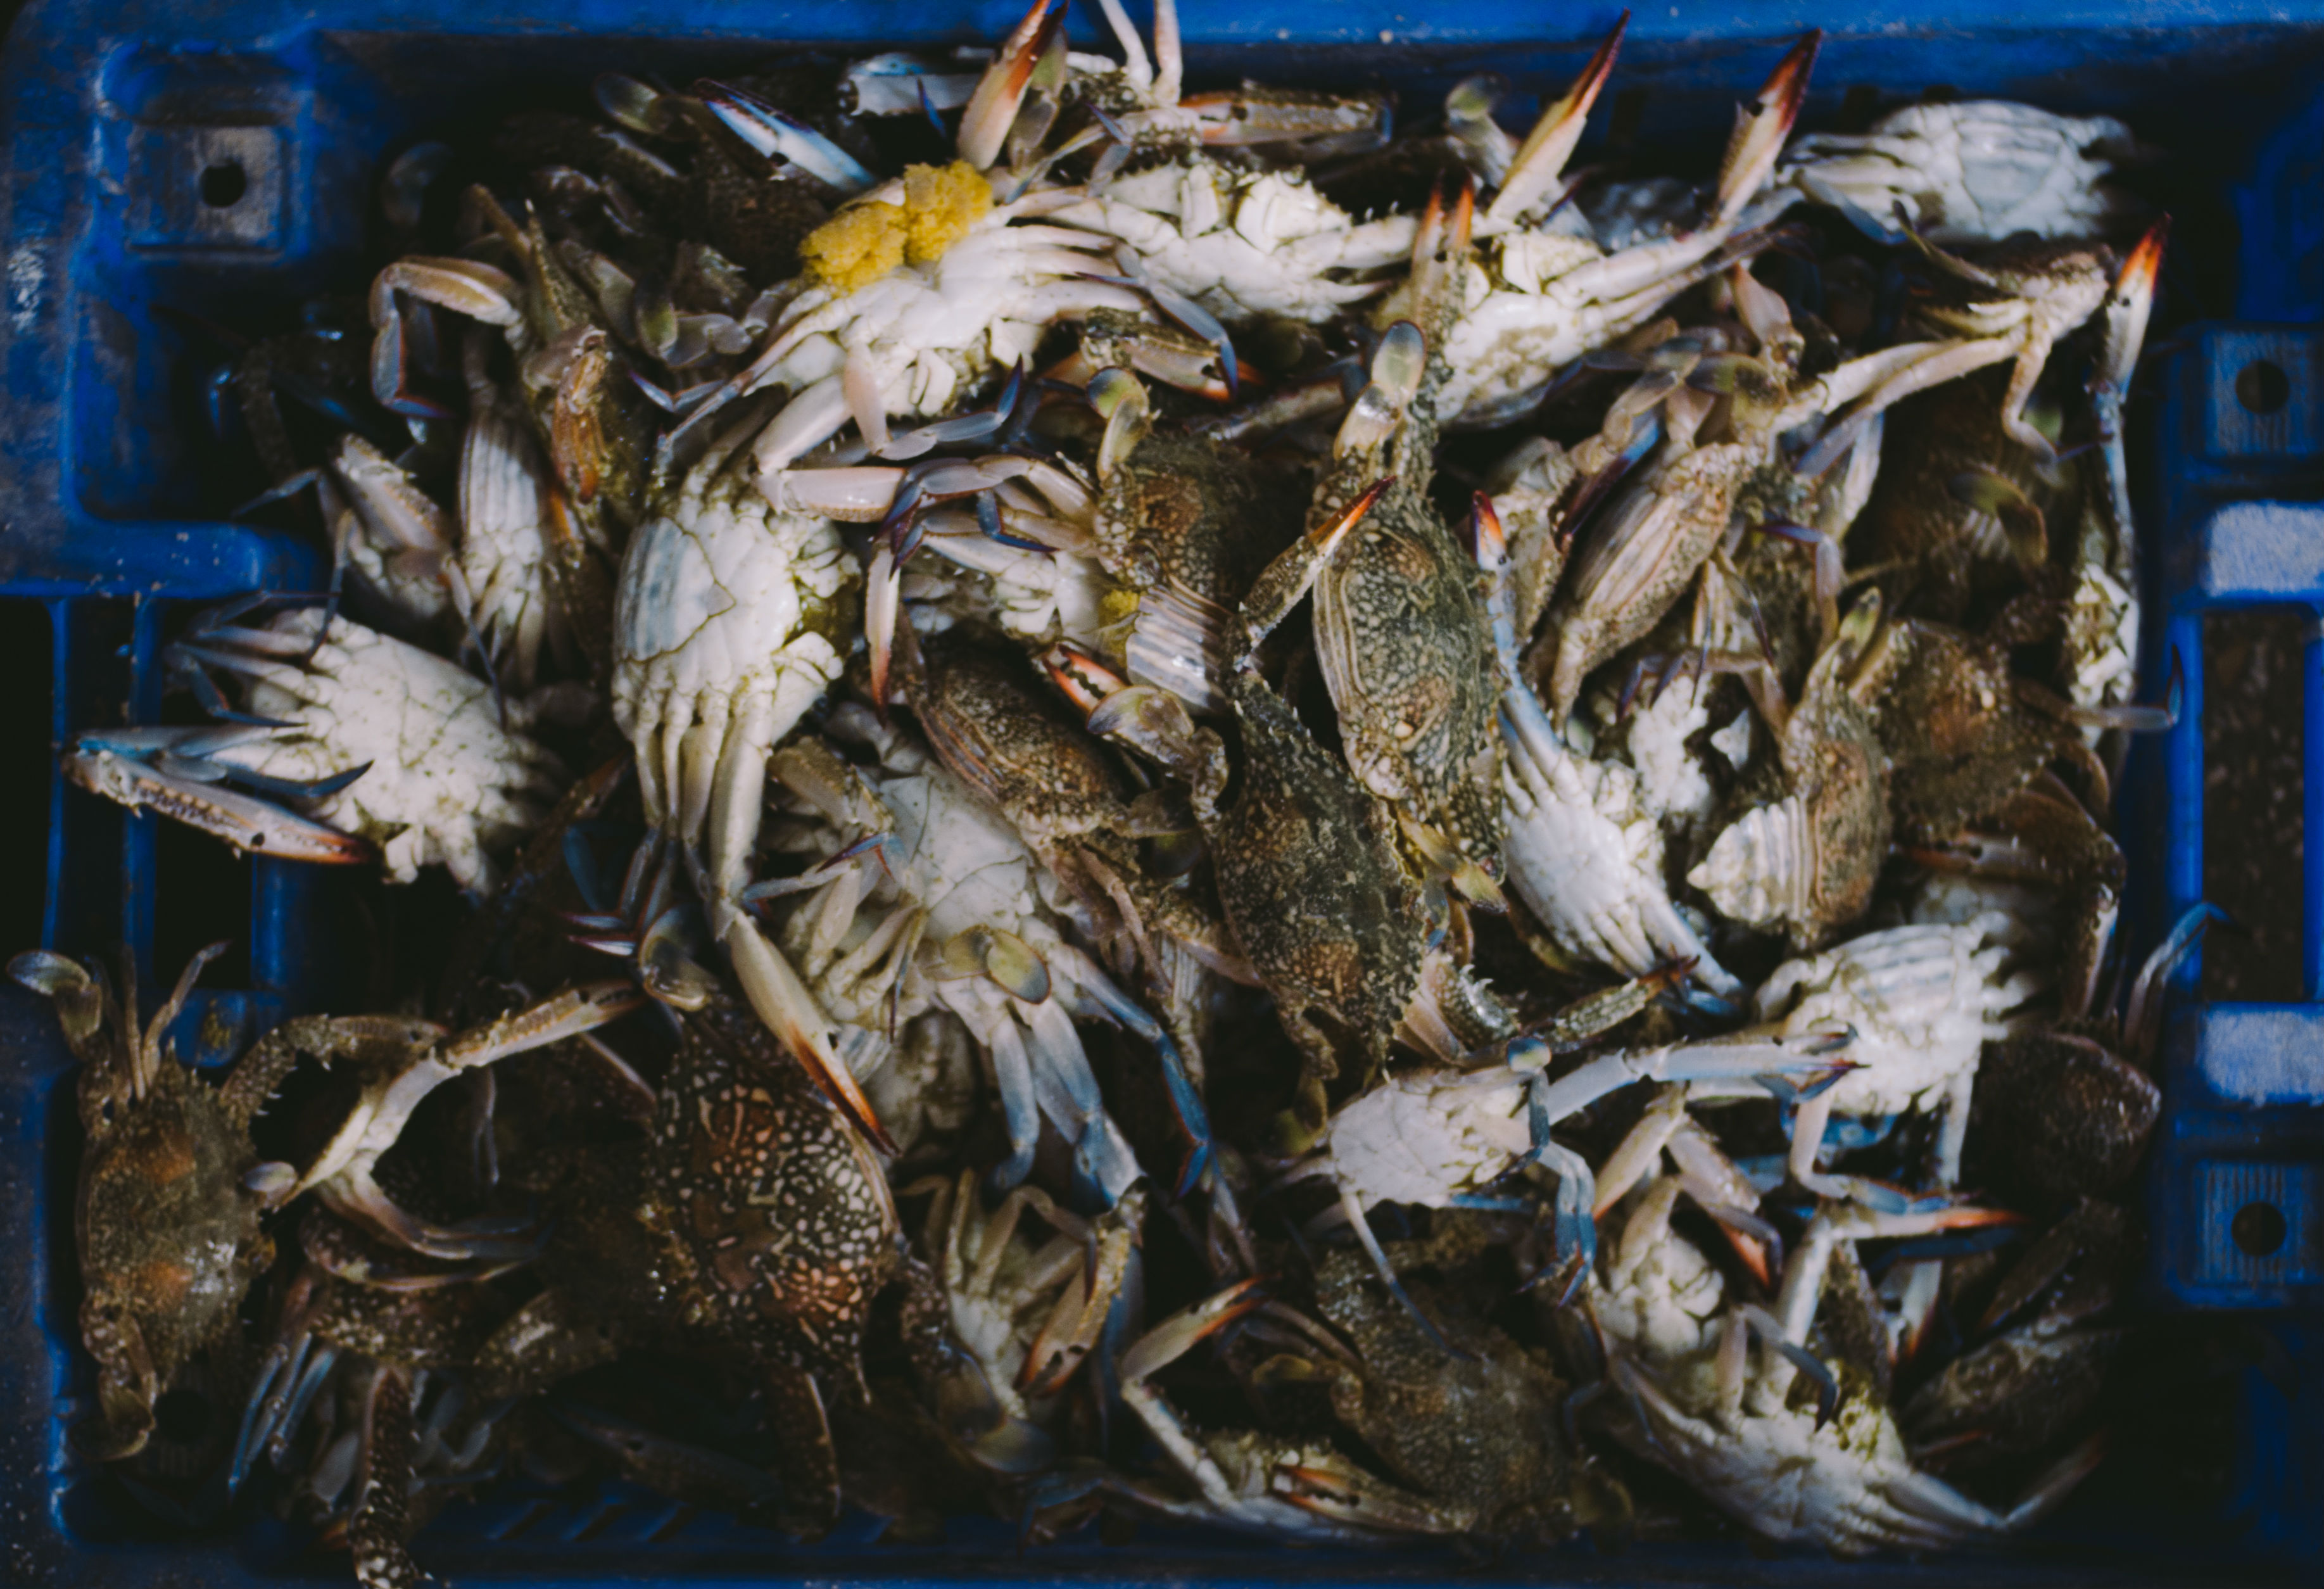 Gaza's fish market lies empty, too big for the downsized hauls with which fishermen now return. But among the jumble of fish and the odd baby shark there is always a crate of prized blue crab